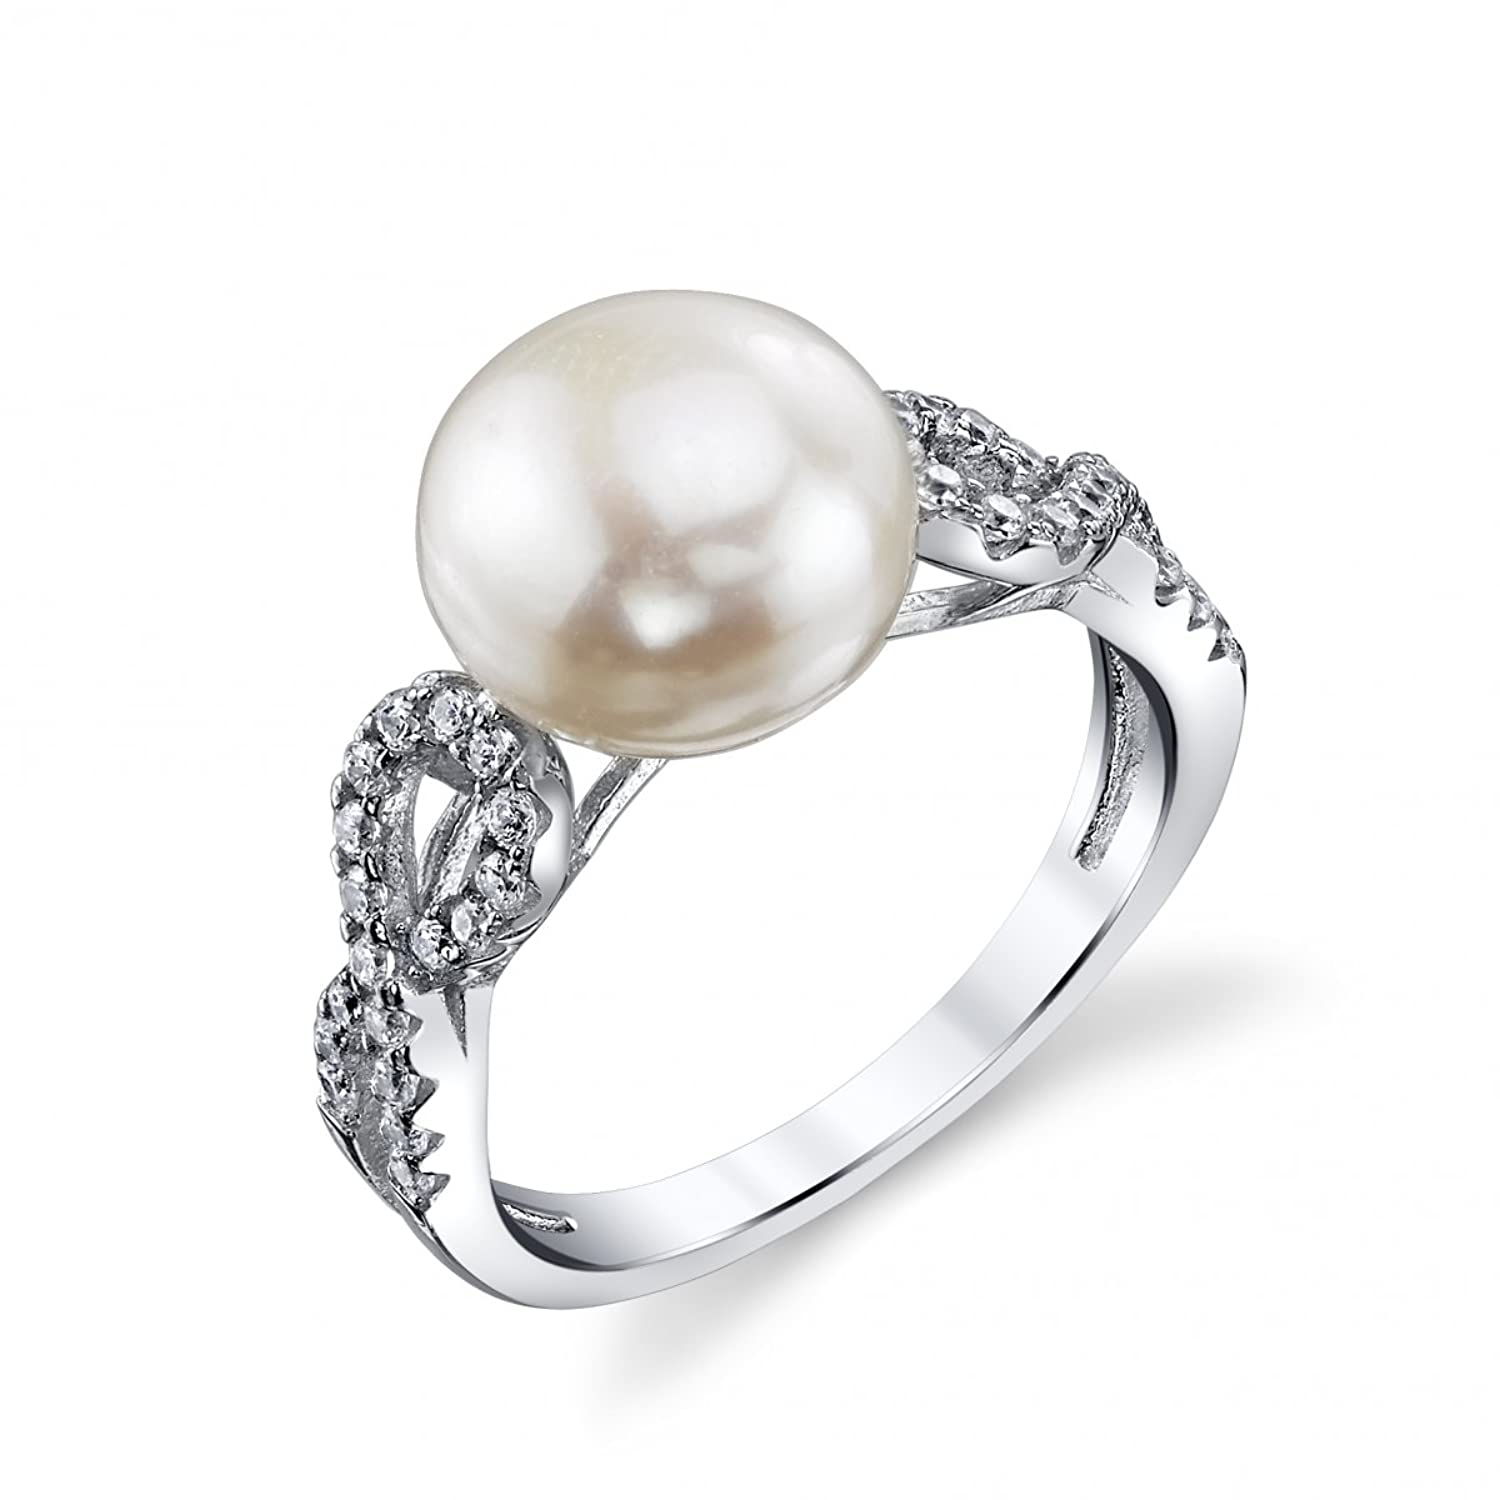 11mm White Freshwater Cultured Pearl & Crystal Ribbon Ring